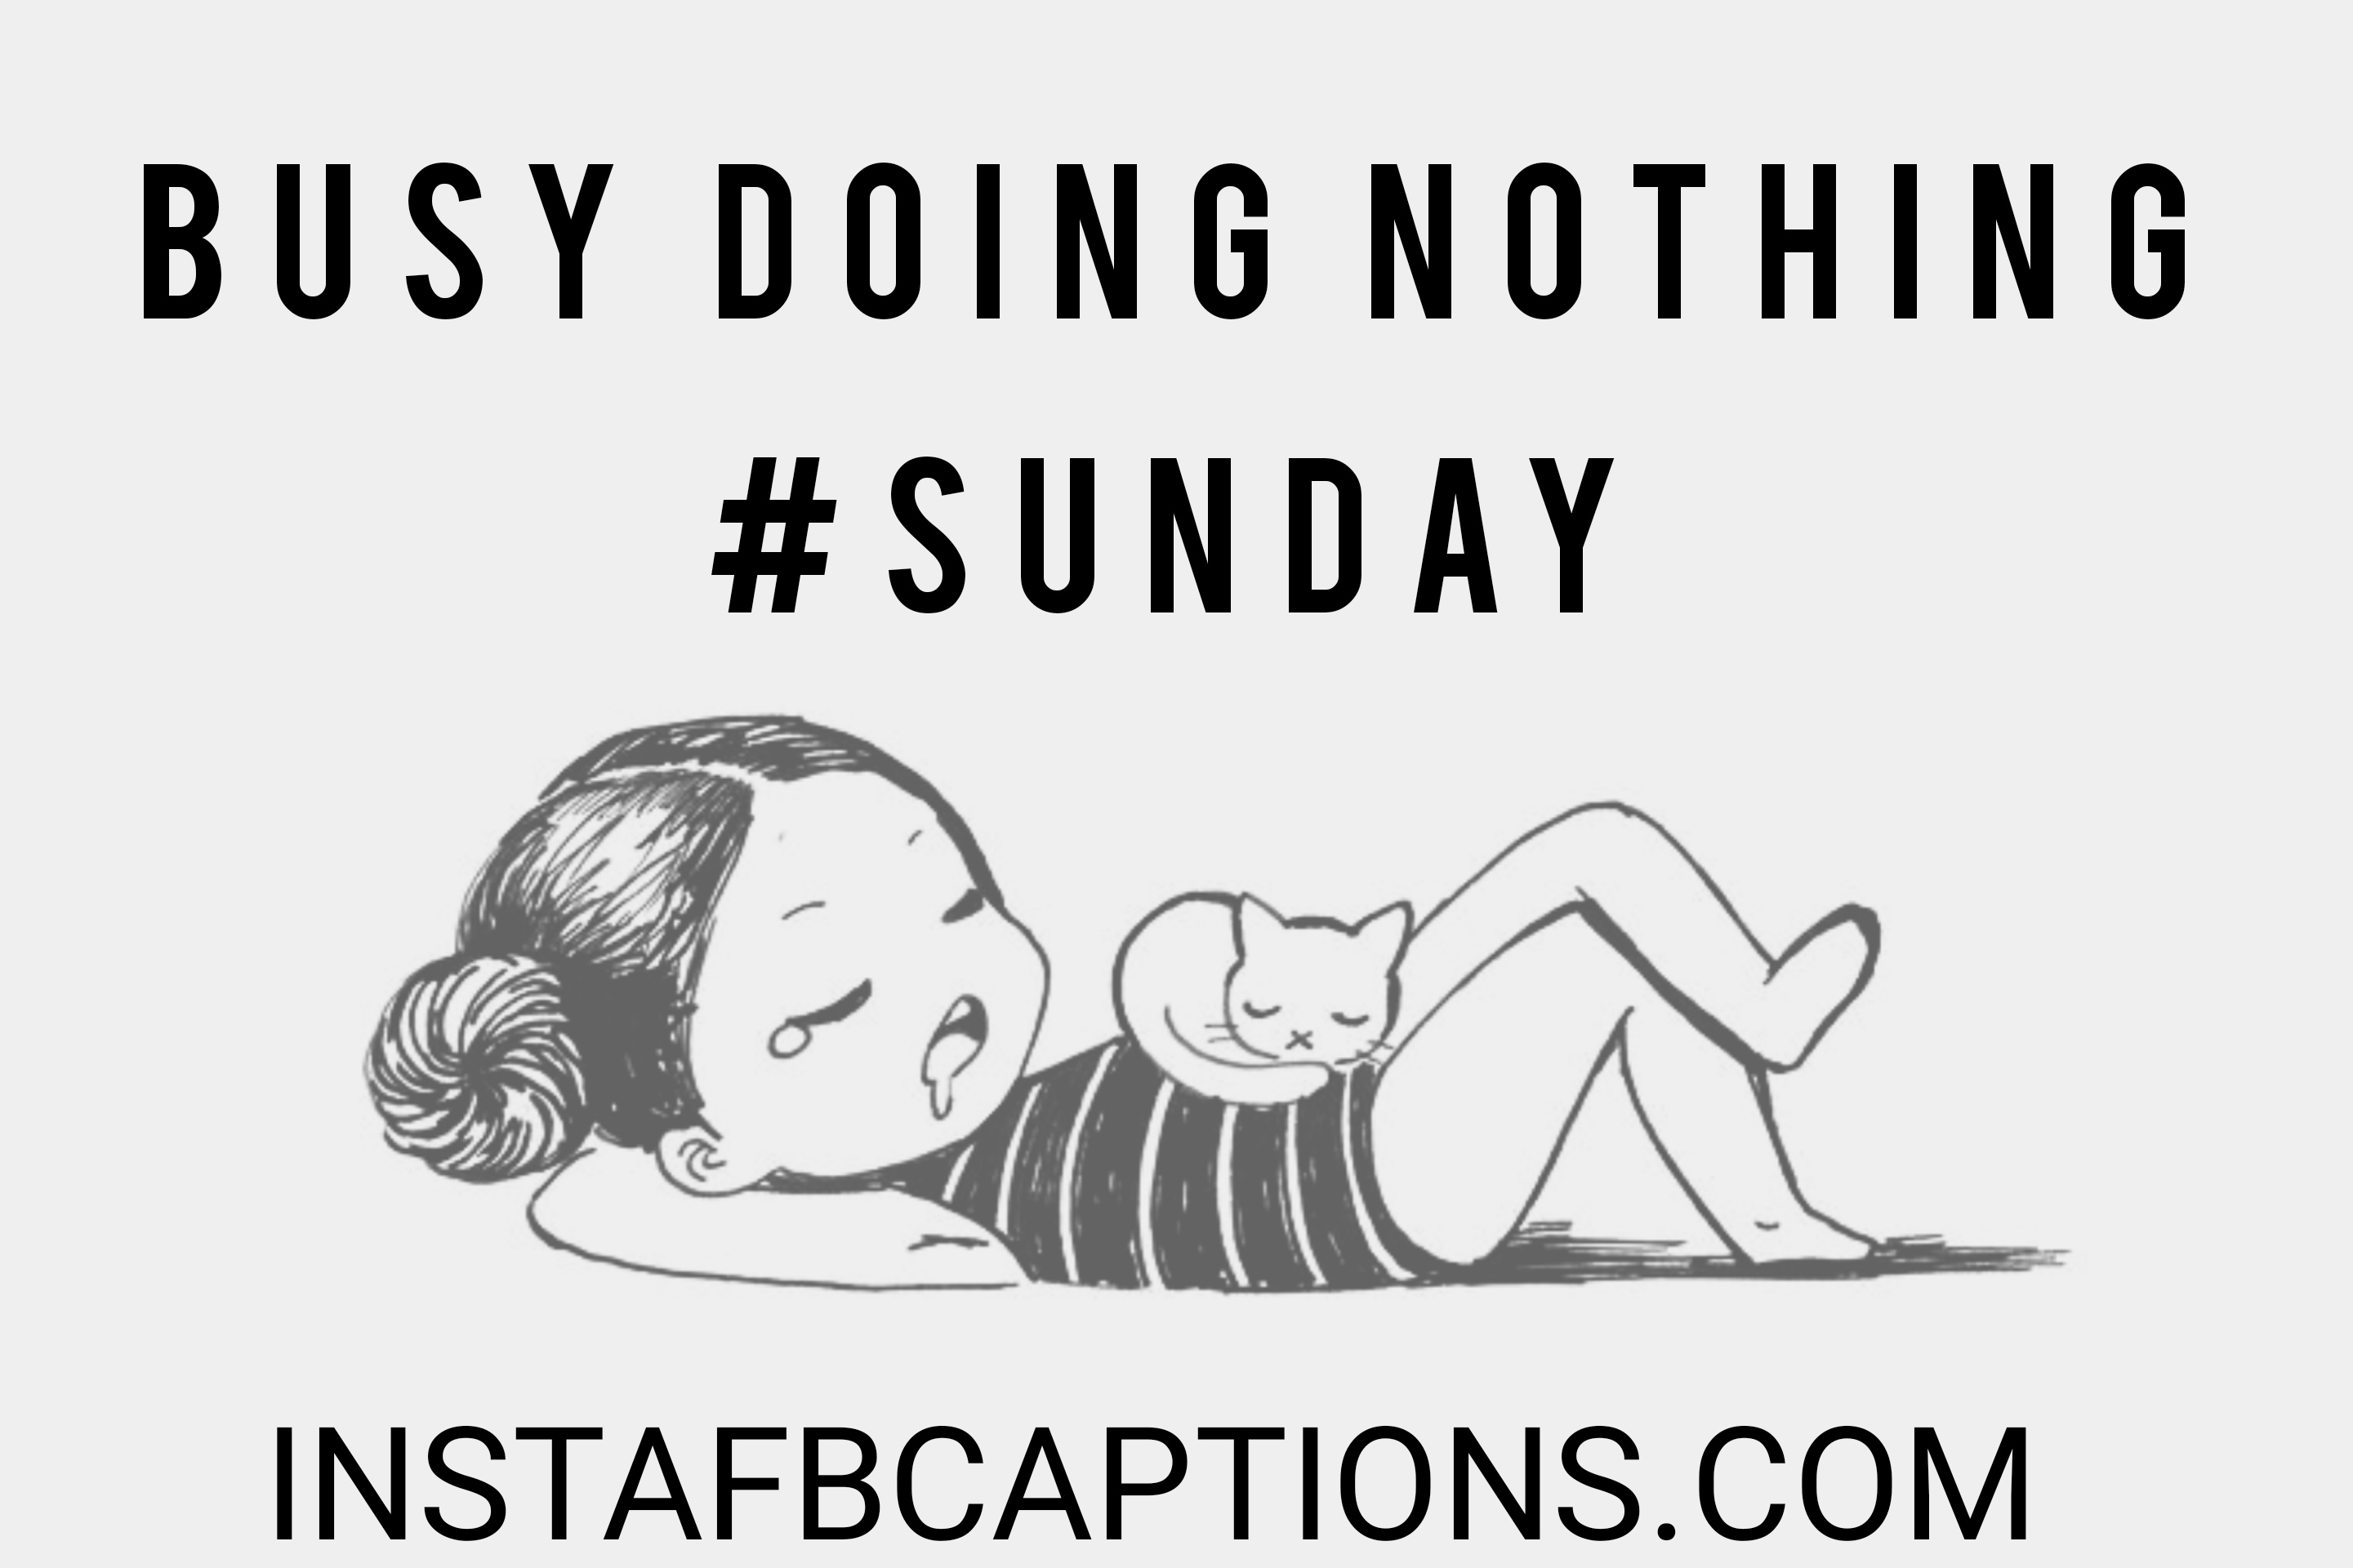 Busy Doing Nothing #sunday  - busy doing nothing sunday - 500+ Weekend Captions (Friends Long Trip Food Throwback)